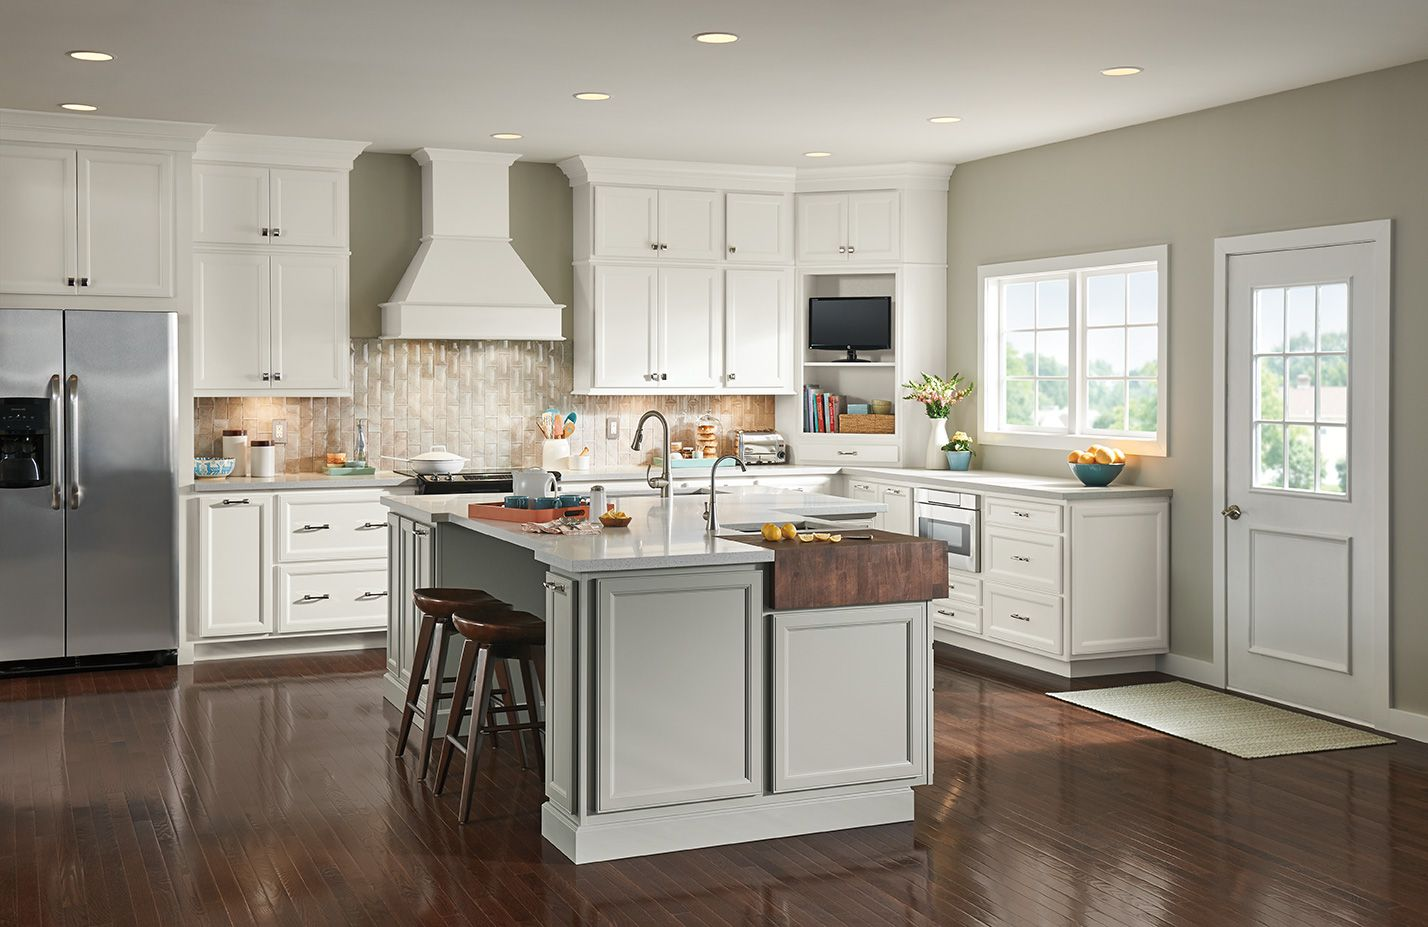 how to color kitchen cabinets shenandoah cardiff linen amp kitchen inspirations 7223